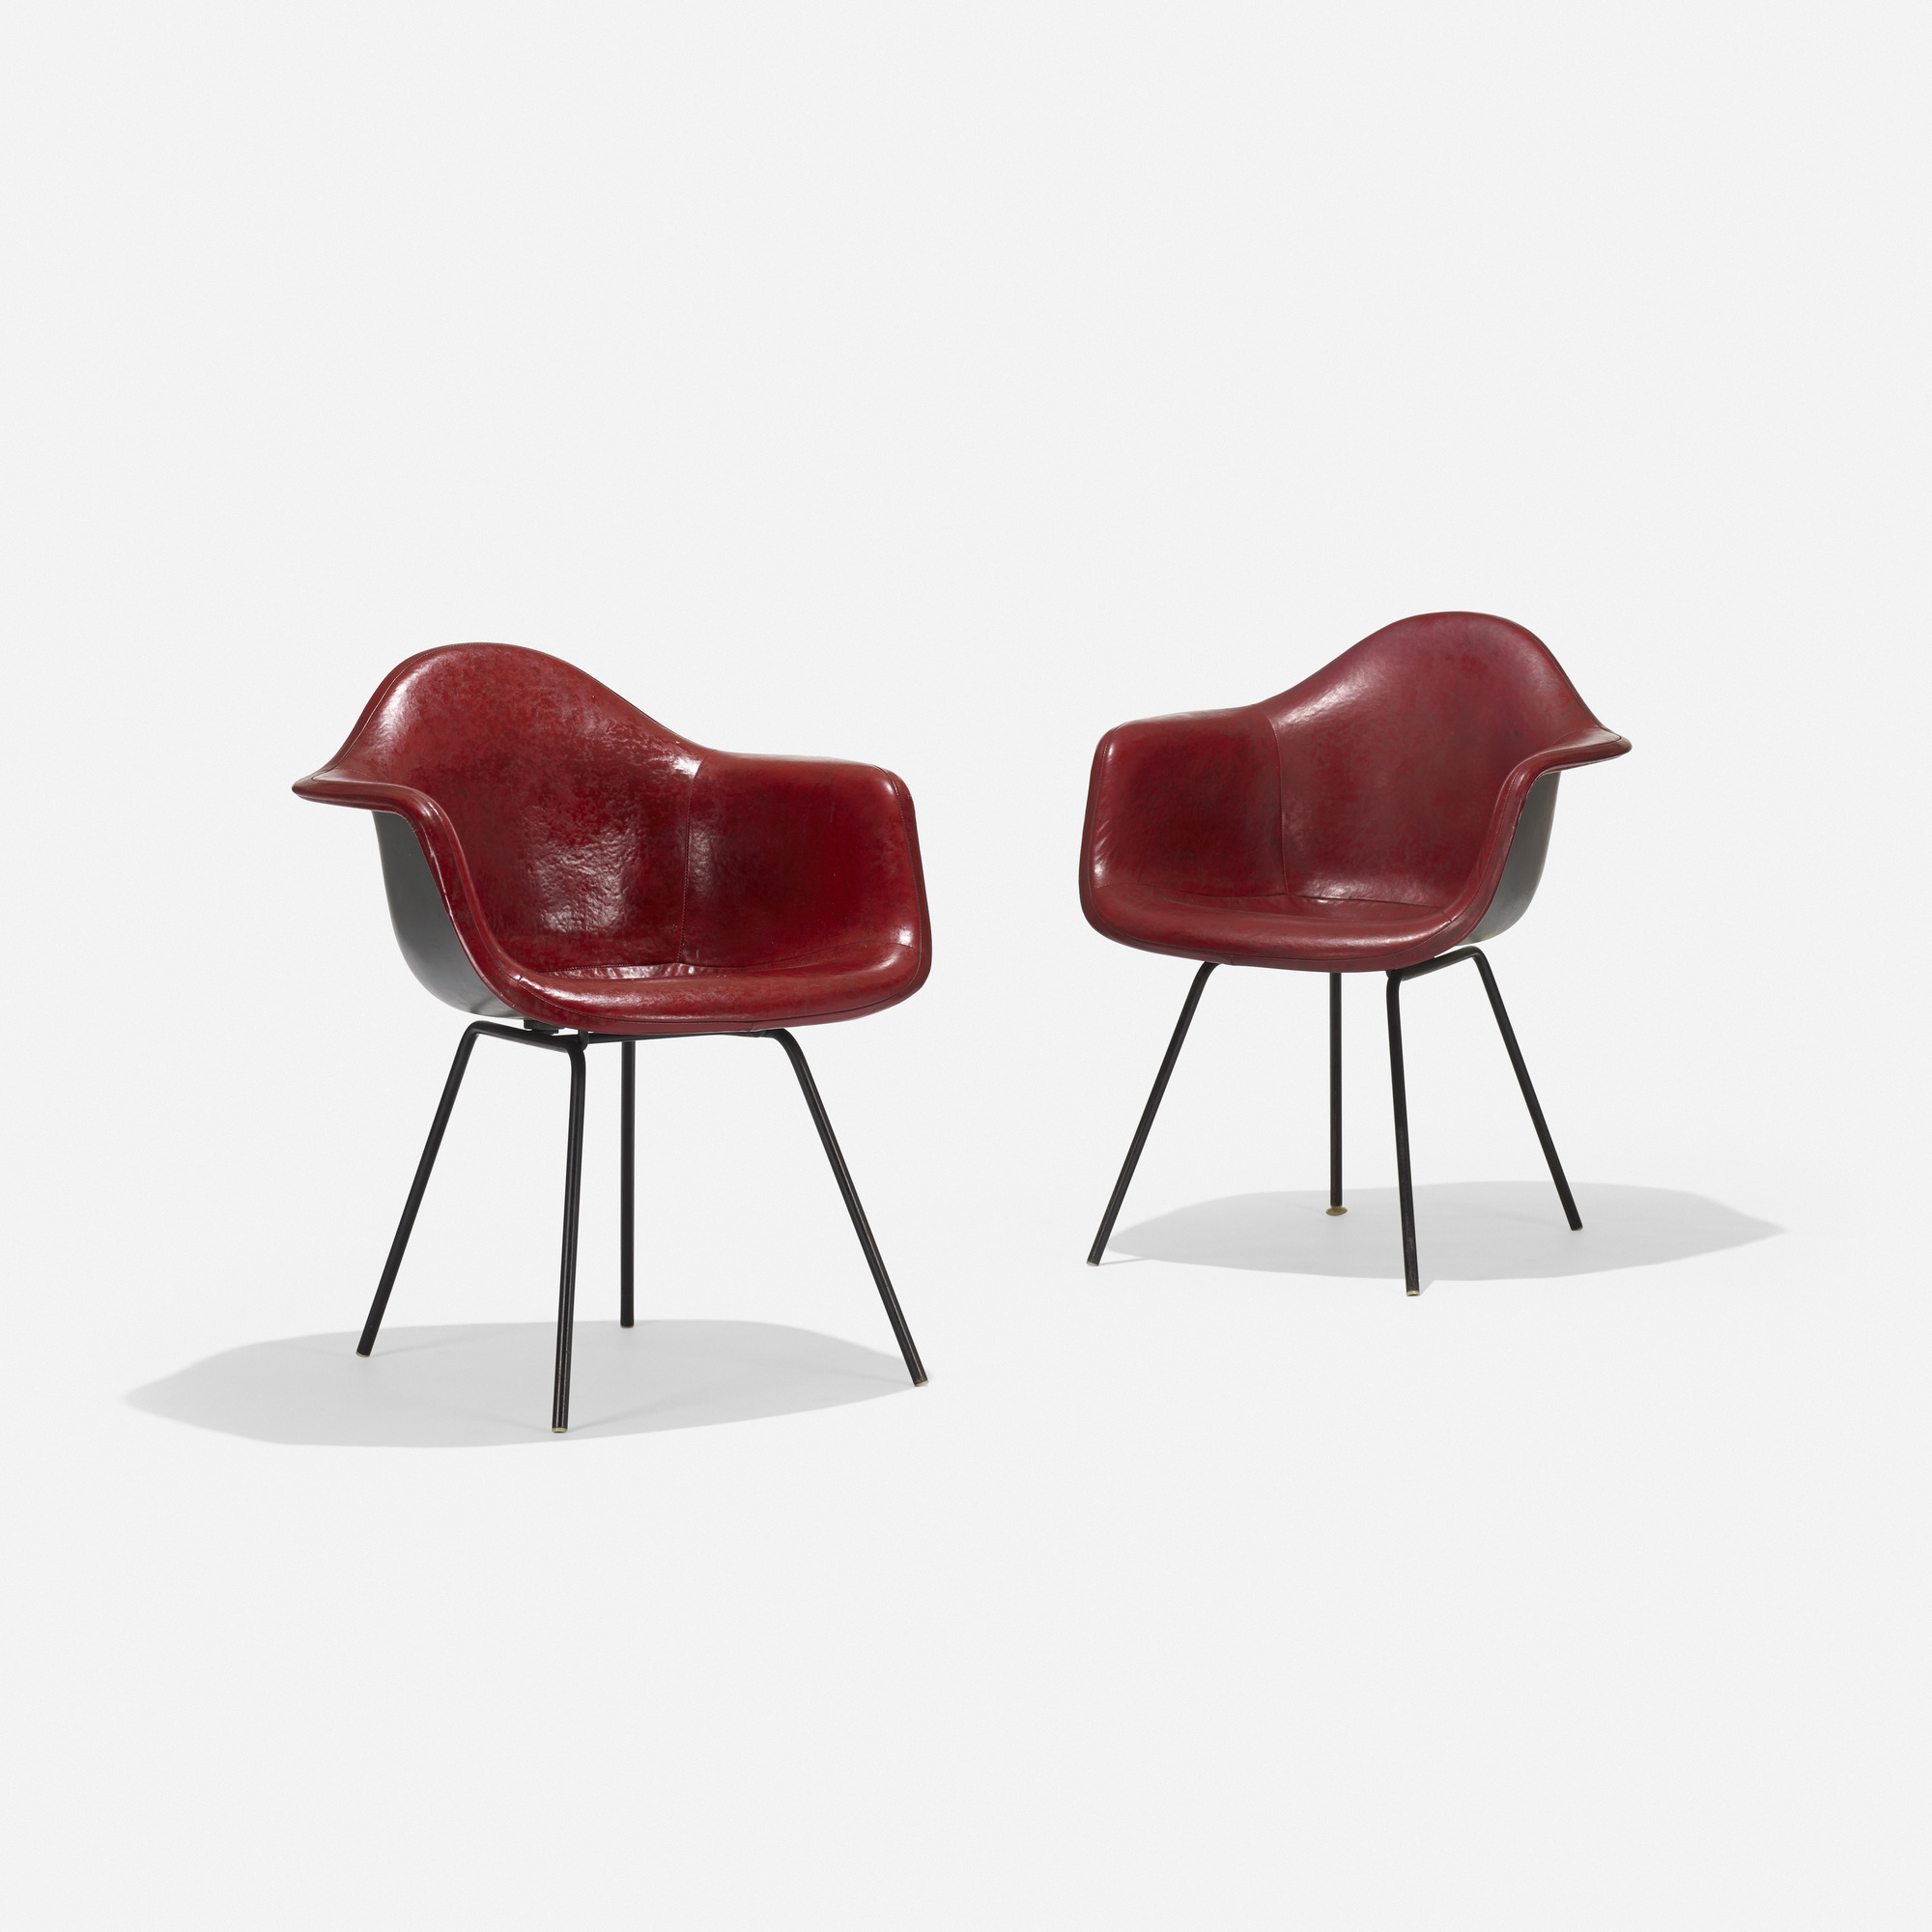 127: Charles and Ray Eames / DAX-1, pair (2 of 3)